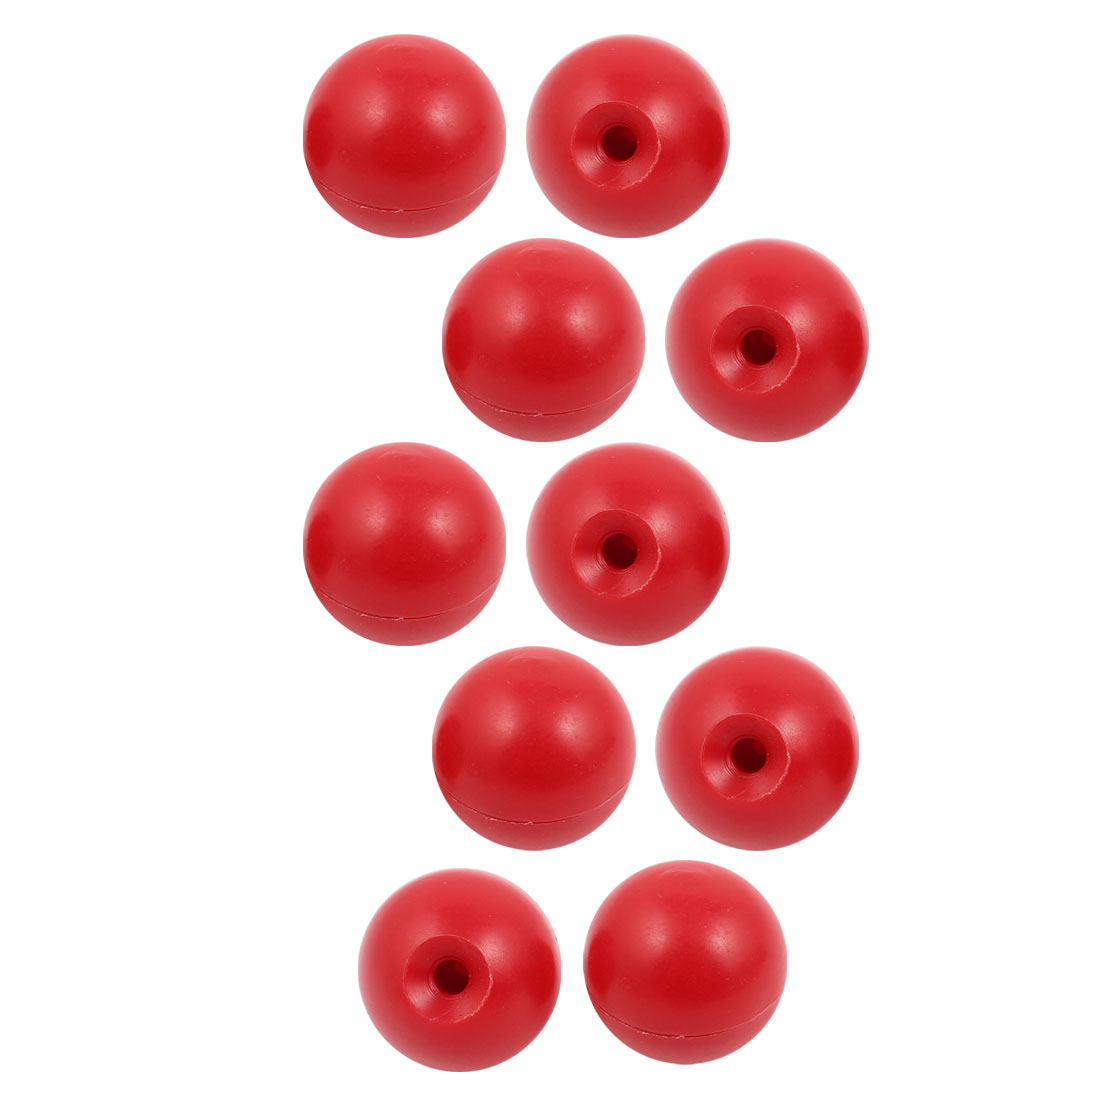 10 Pcs M6 x 30mm Plastic Ball Machine Tool Accessories Console Handle Red